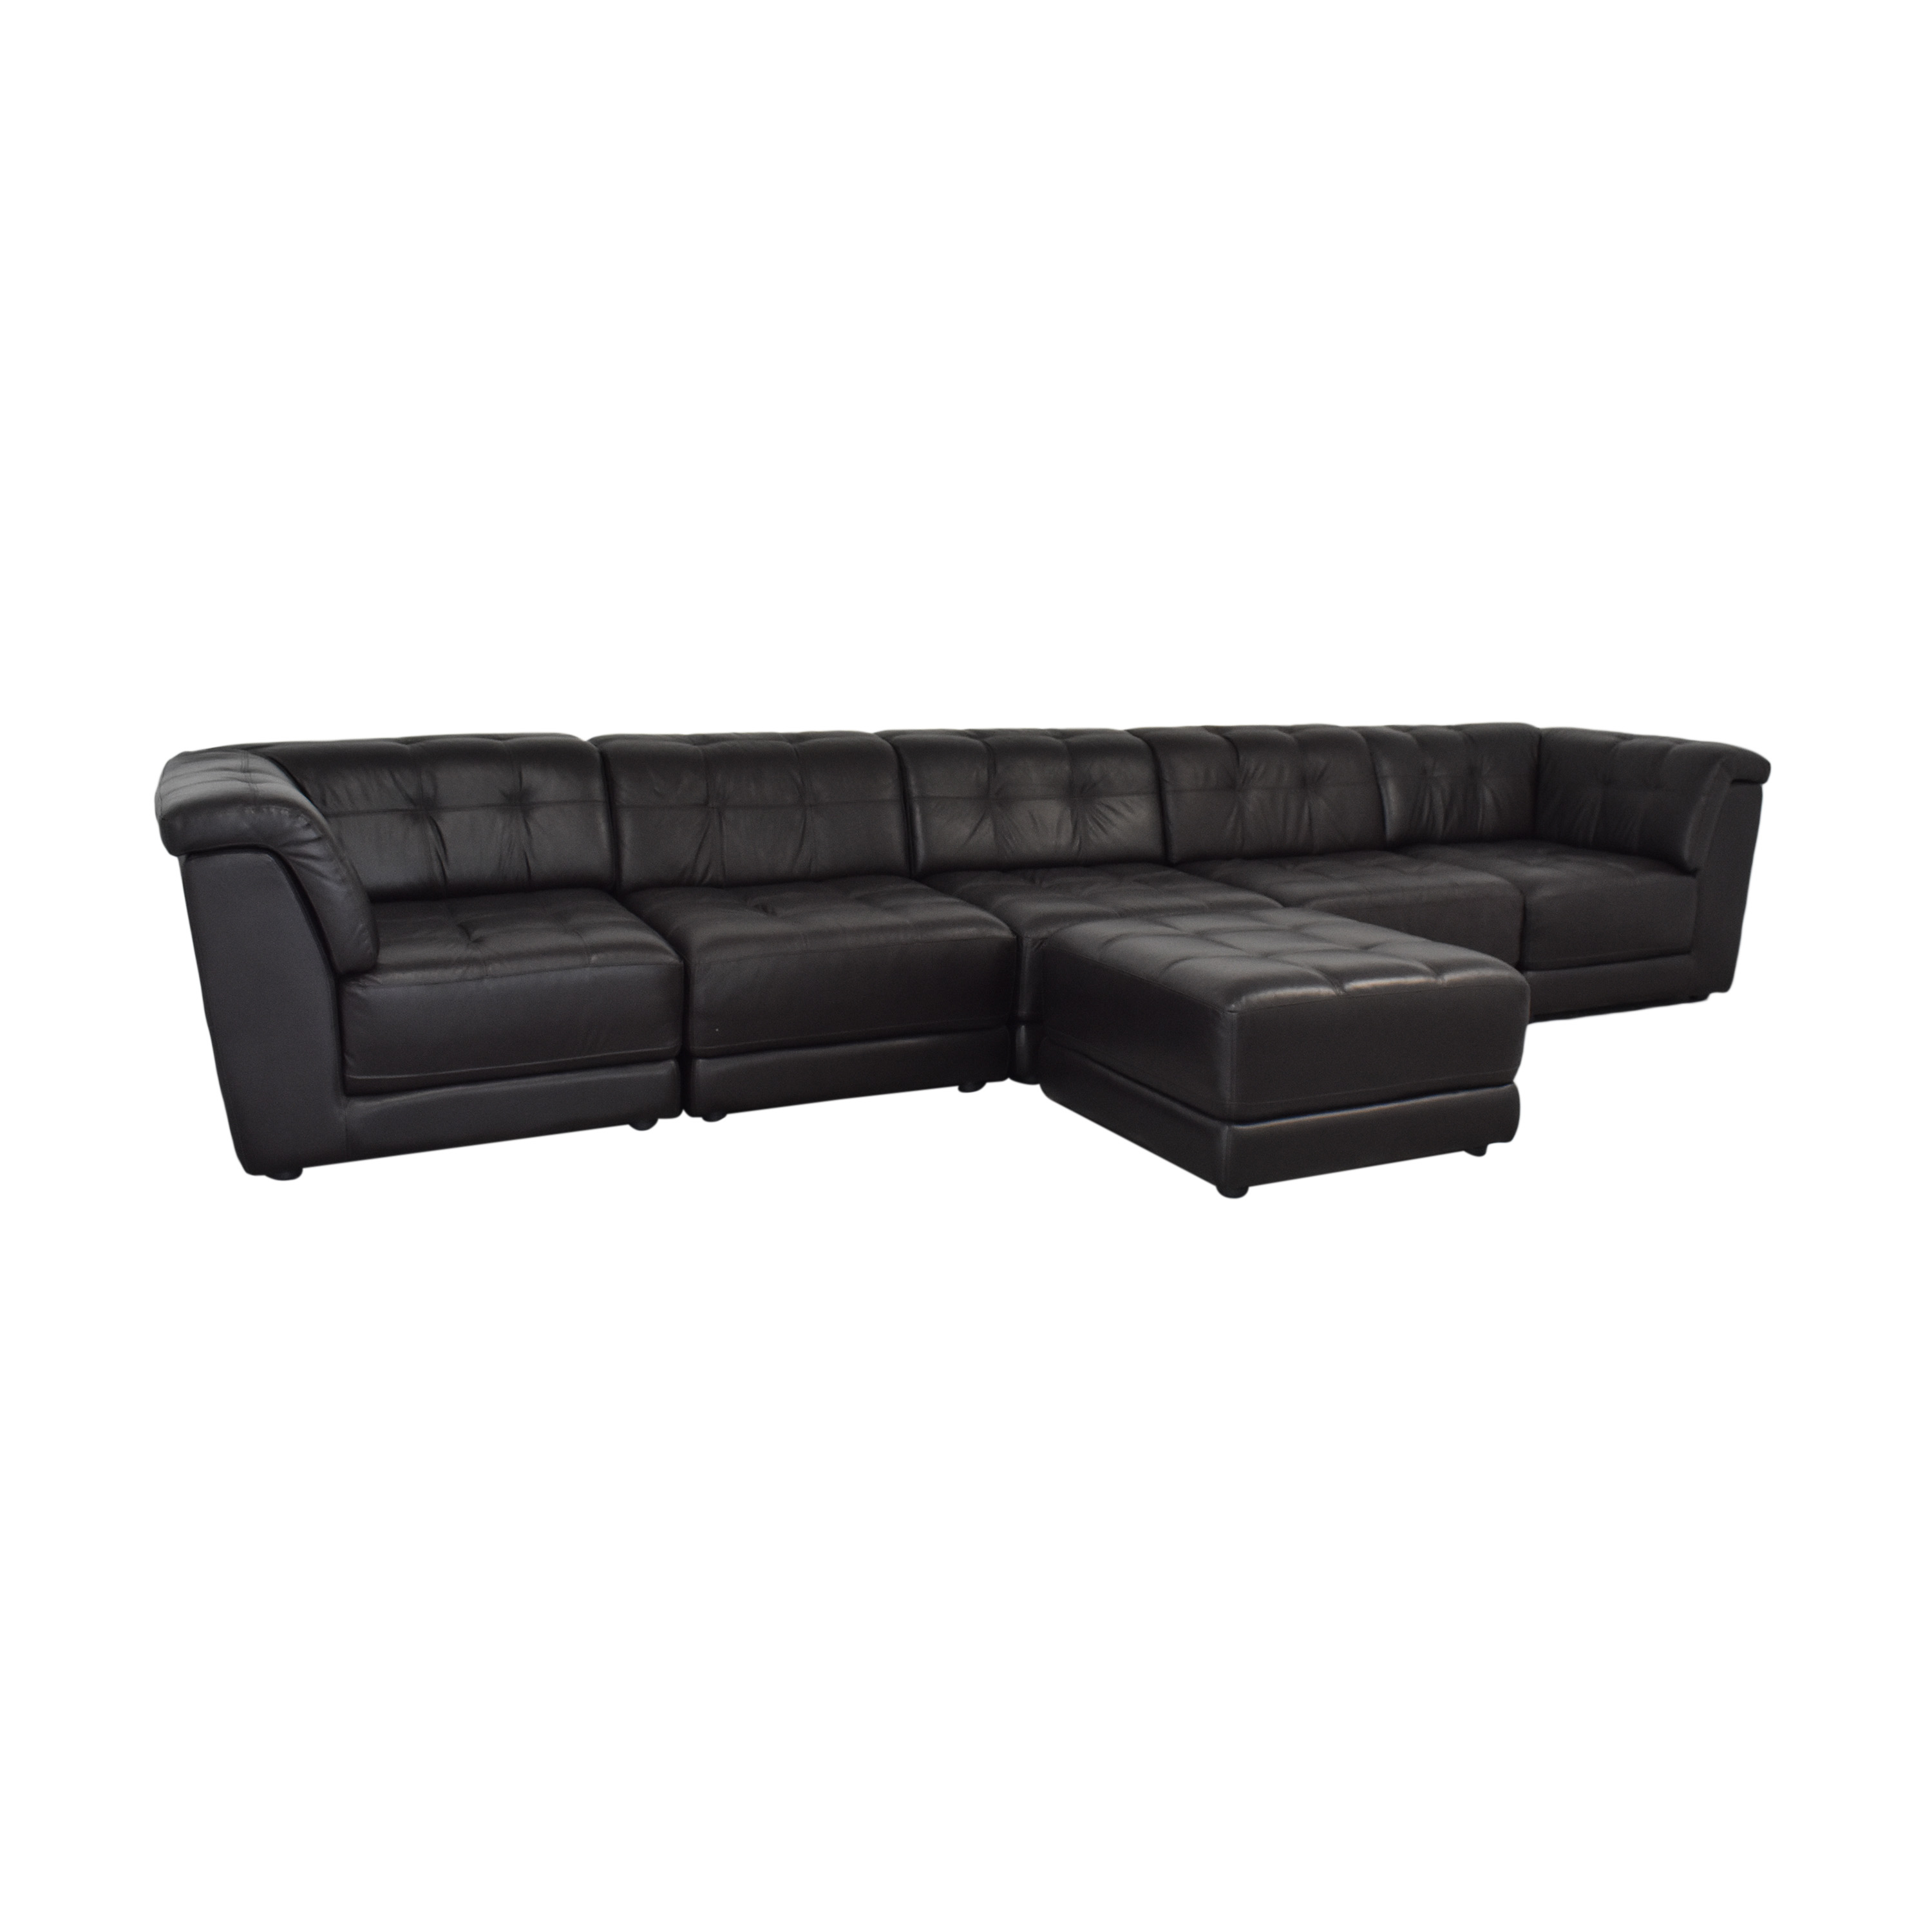 Chateau d'Ax Stacey Modular Sectional Sofa / Sectionals